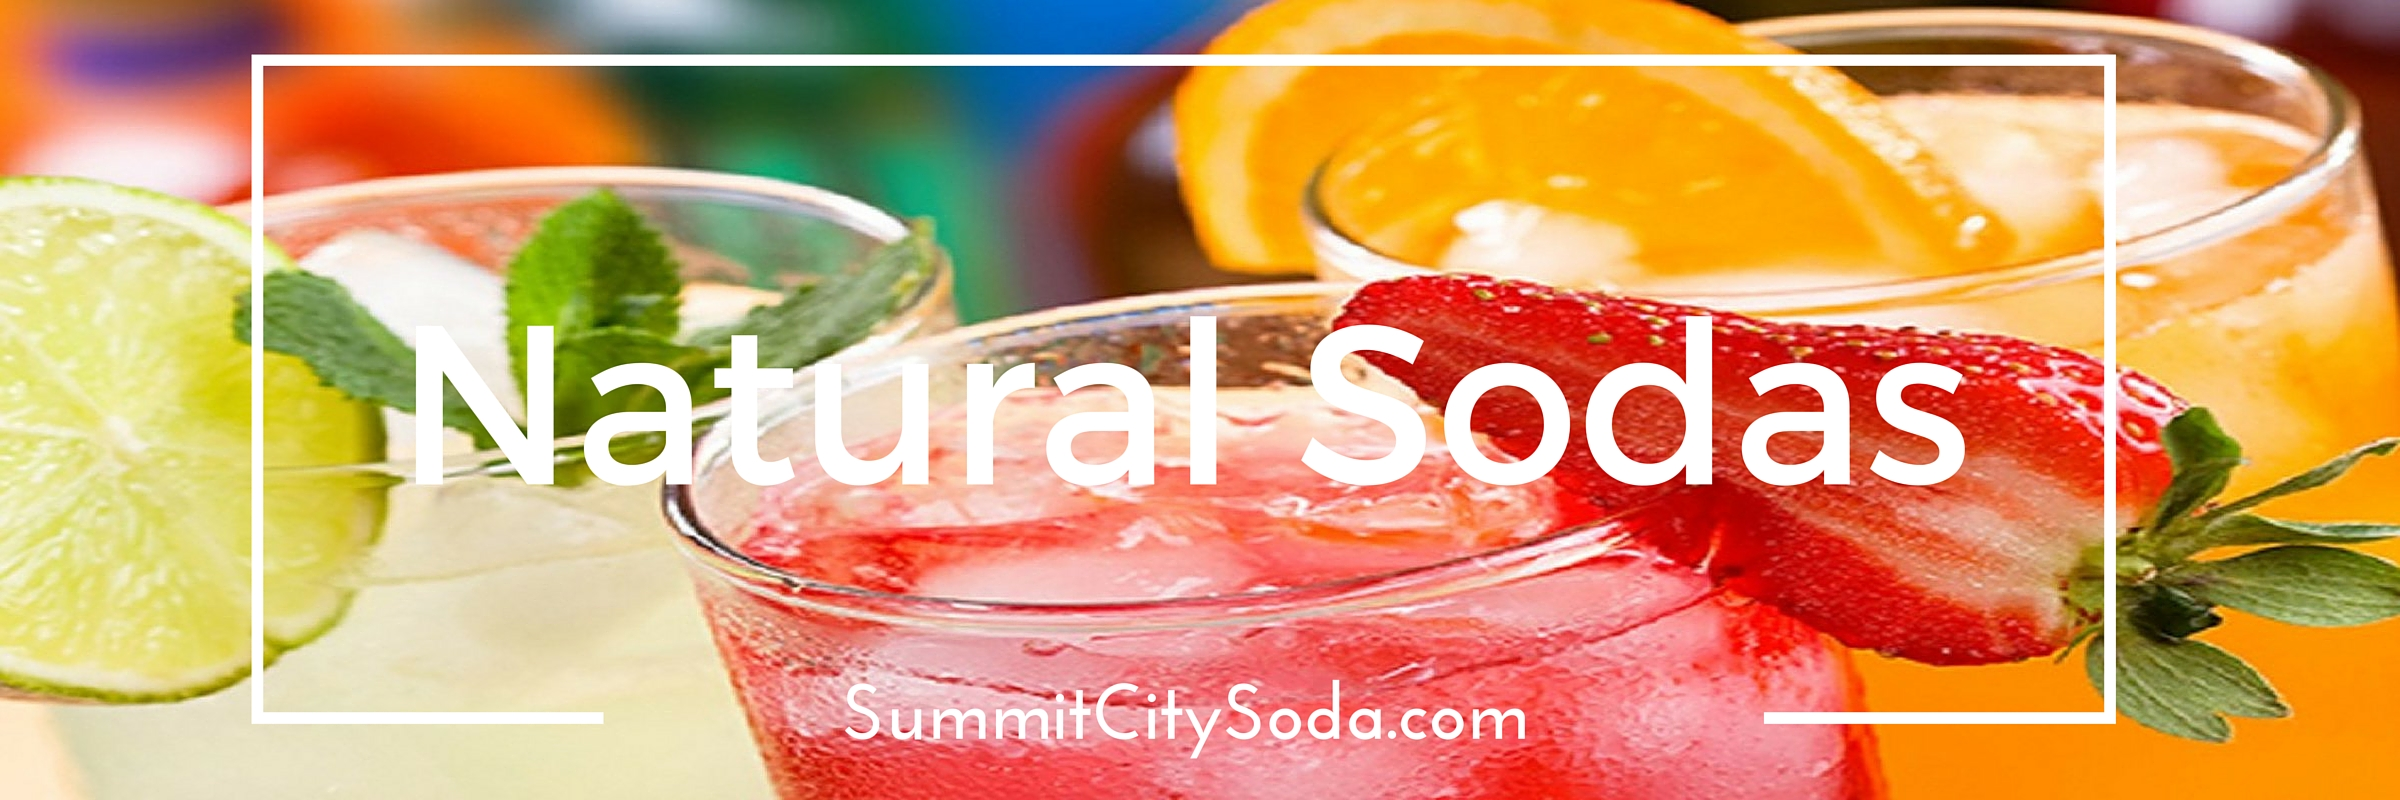 Fresh Natural Sodas at SummitCitySoda.com